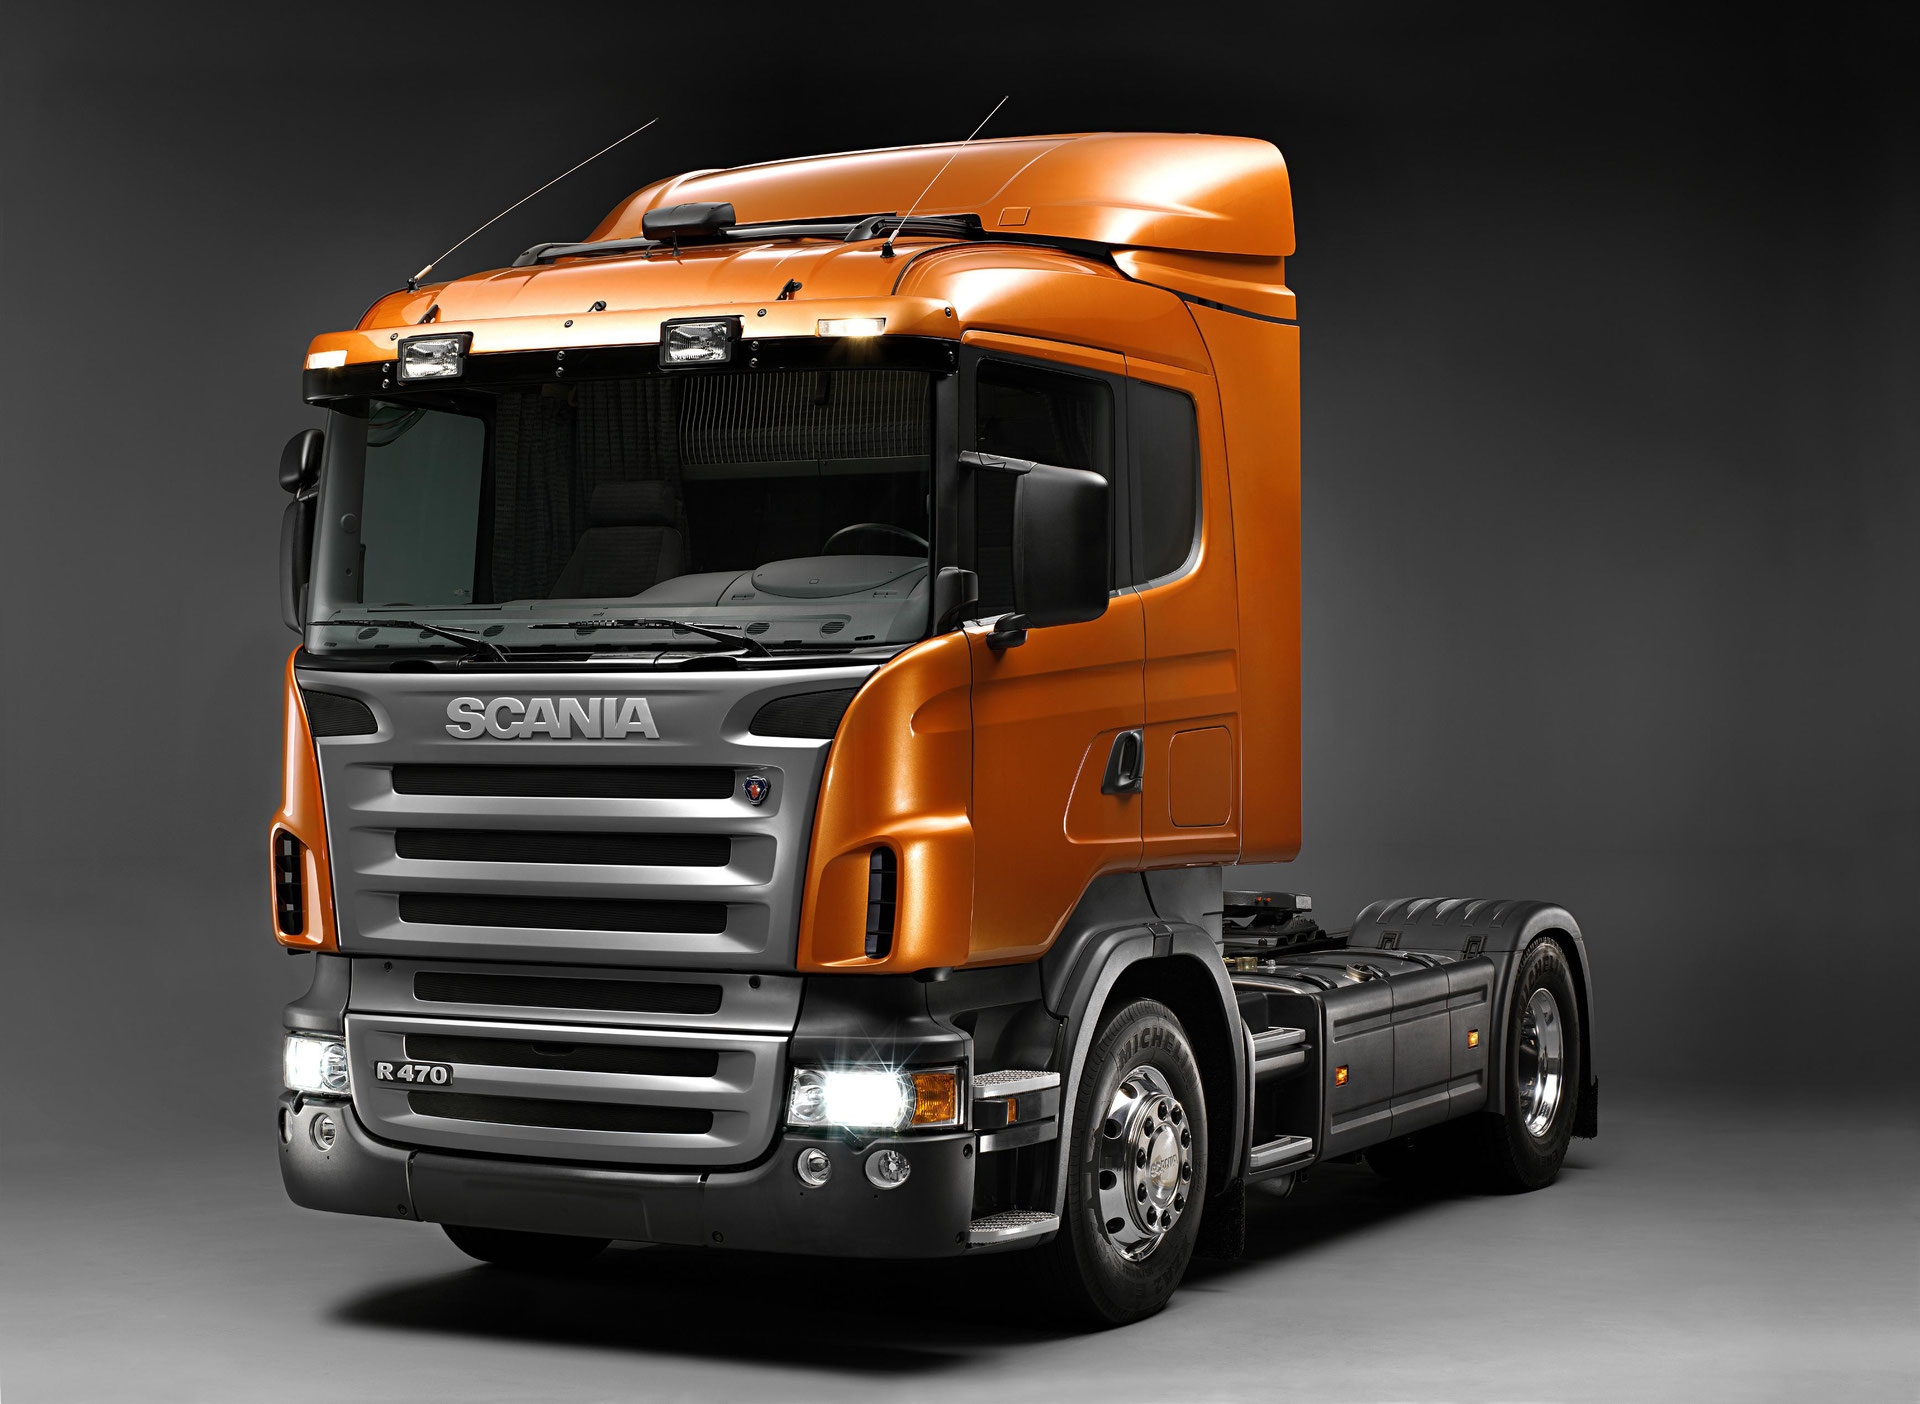 108 scania trucks service manuals free download